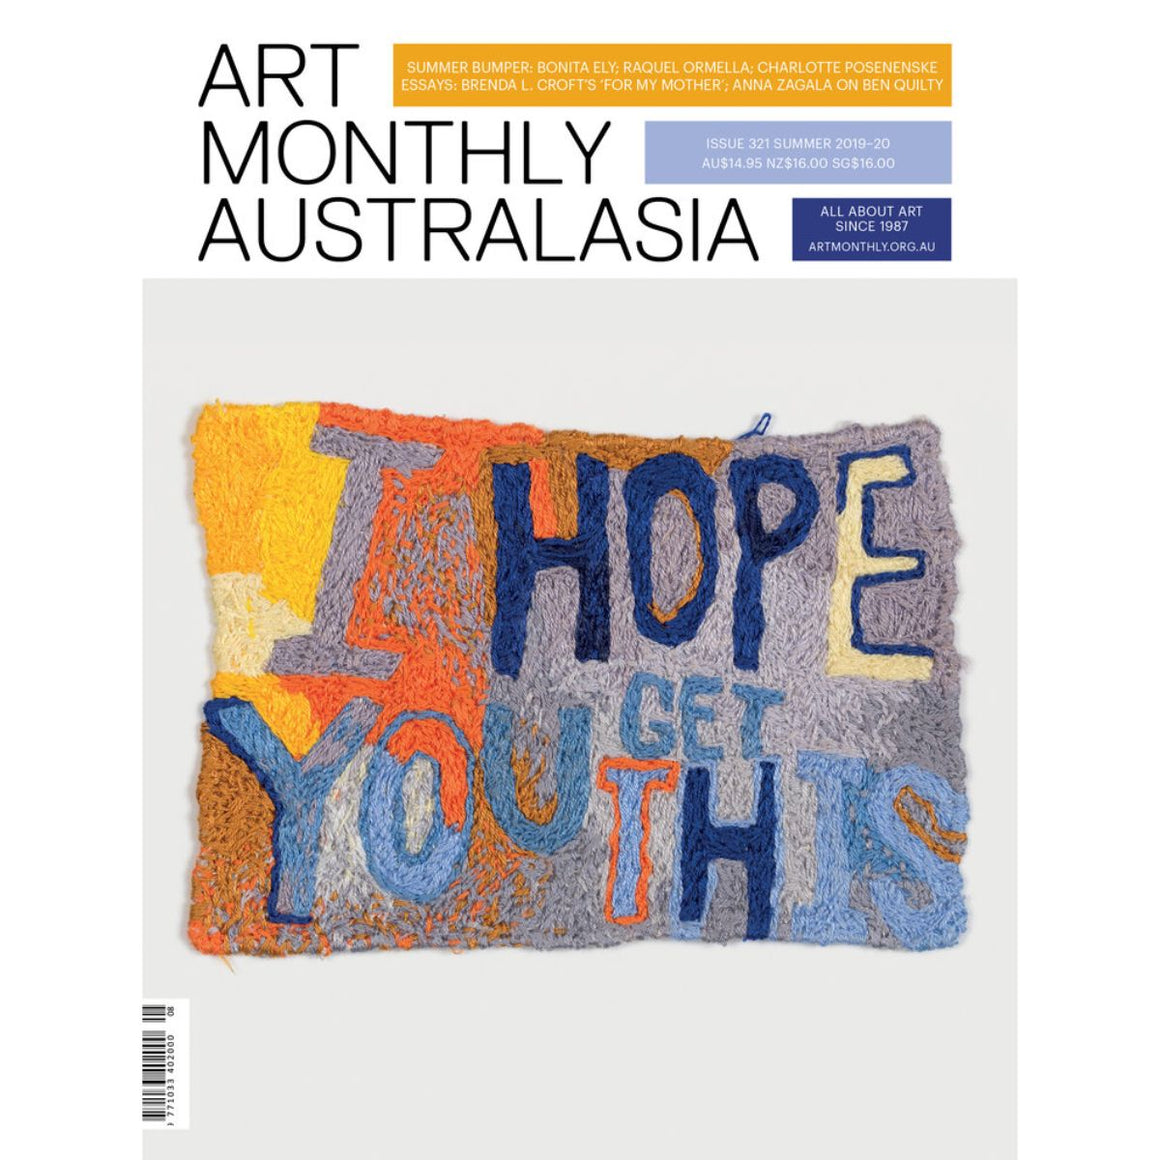 Magazine Cover featuring Issue 321 Summer 2020 Art Monthly Magazine